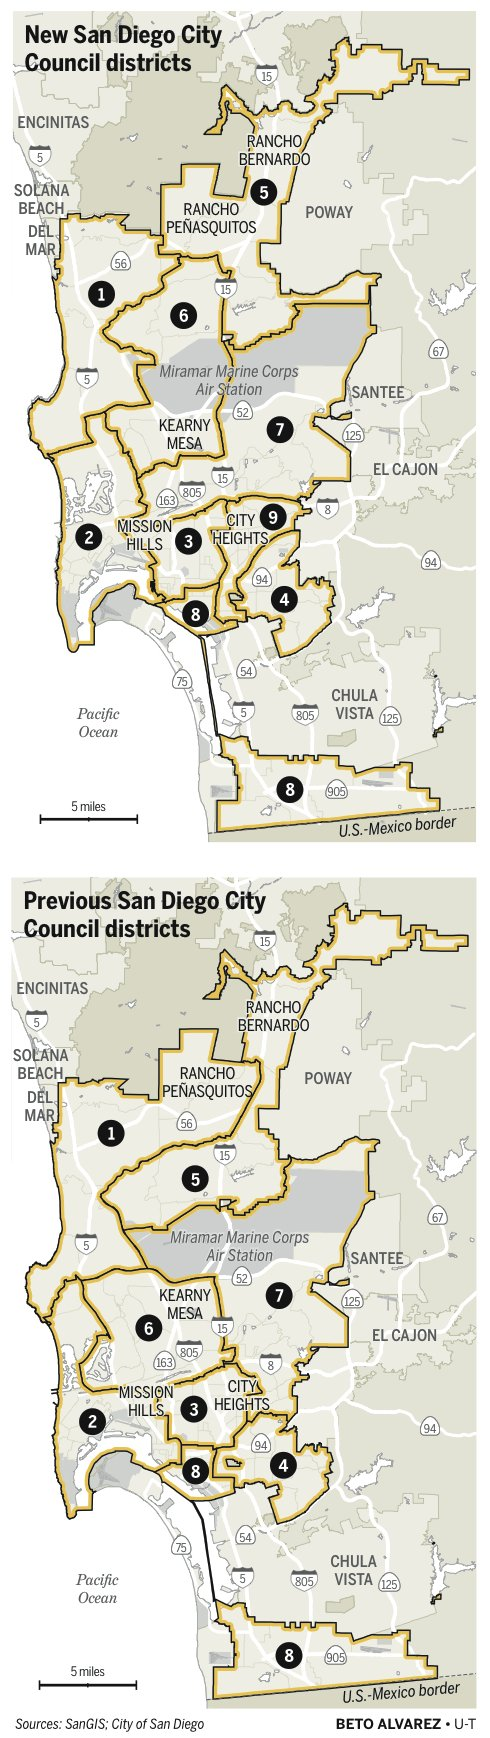 san diego new city council districts 2011